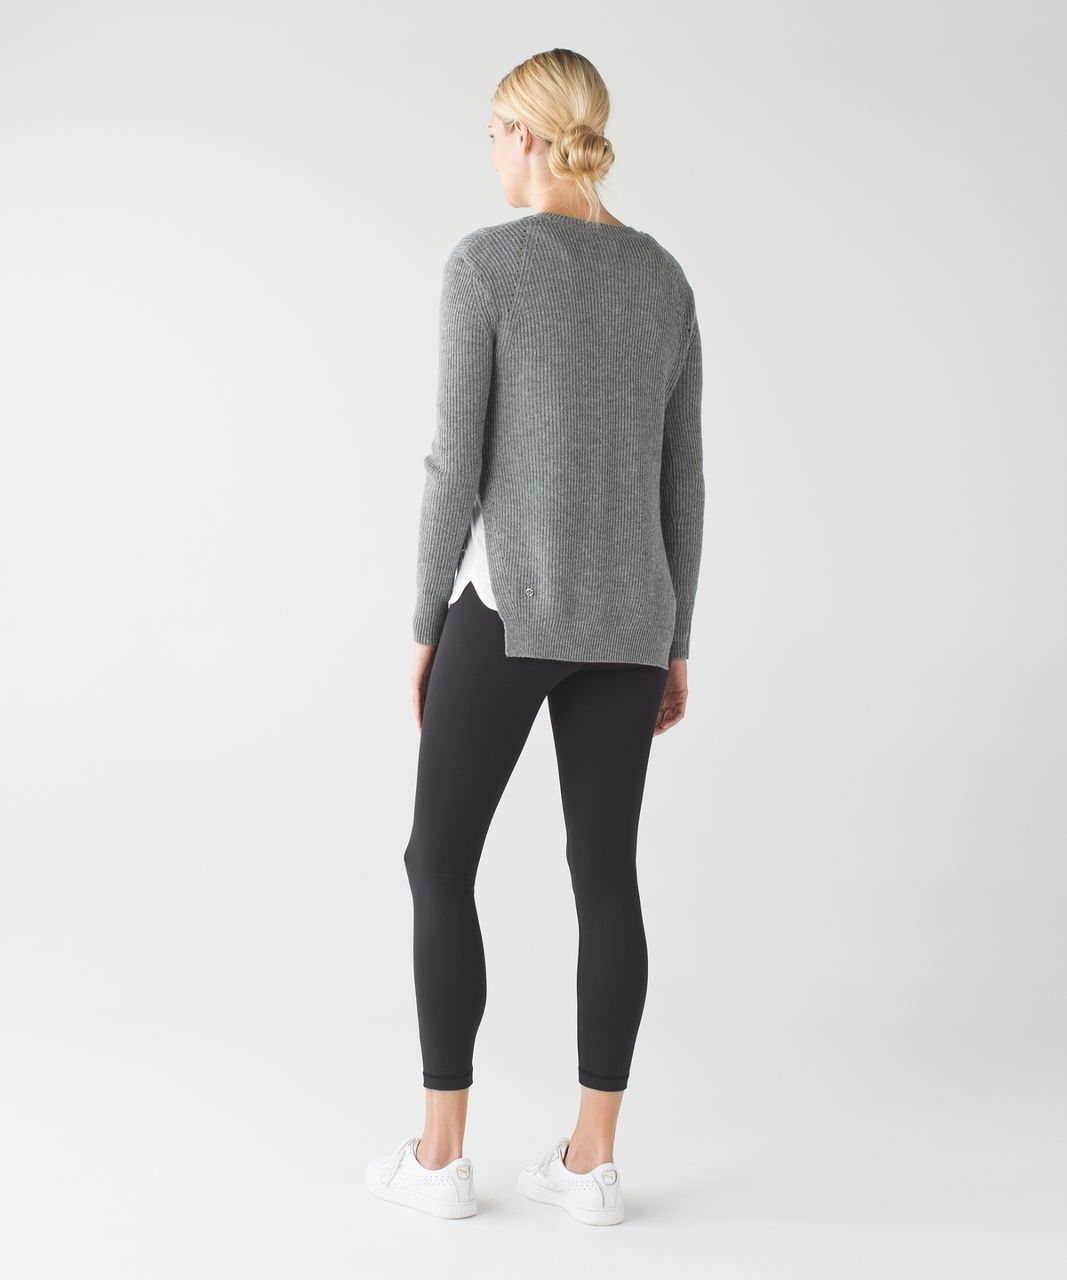 Lululemon High Times Pant (Brushed) *Full-On Luxtreme - Black